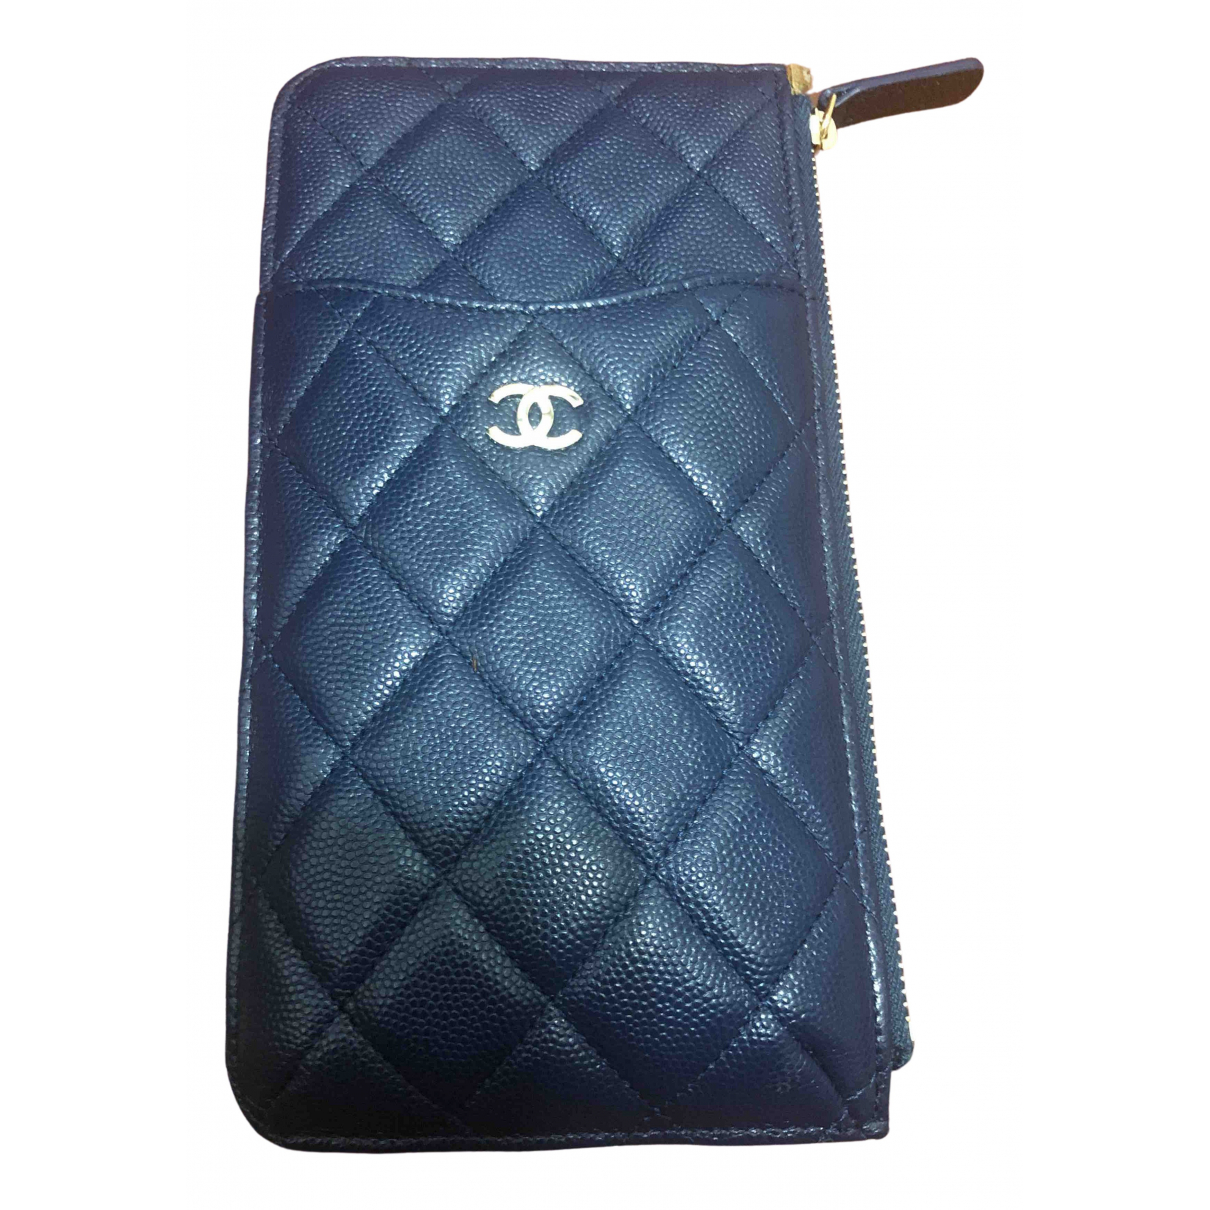 Chanel Timeless/Classique Navy Leather Purses, wallet & cases for Women \N